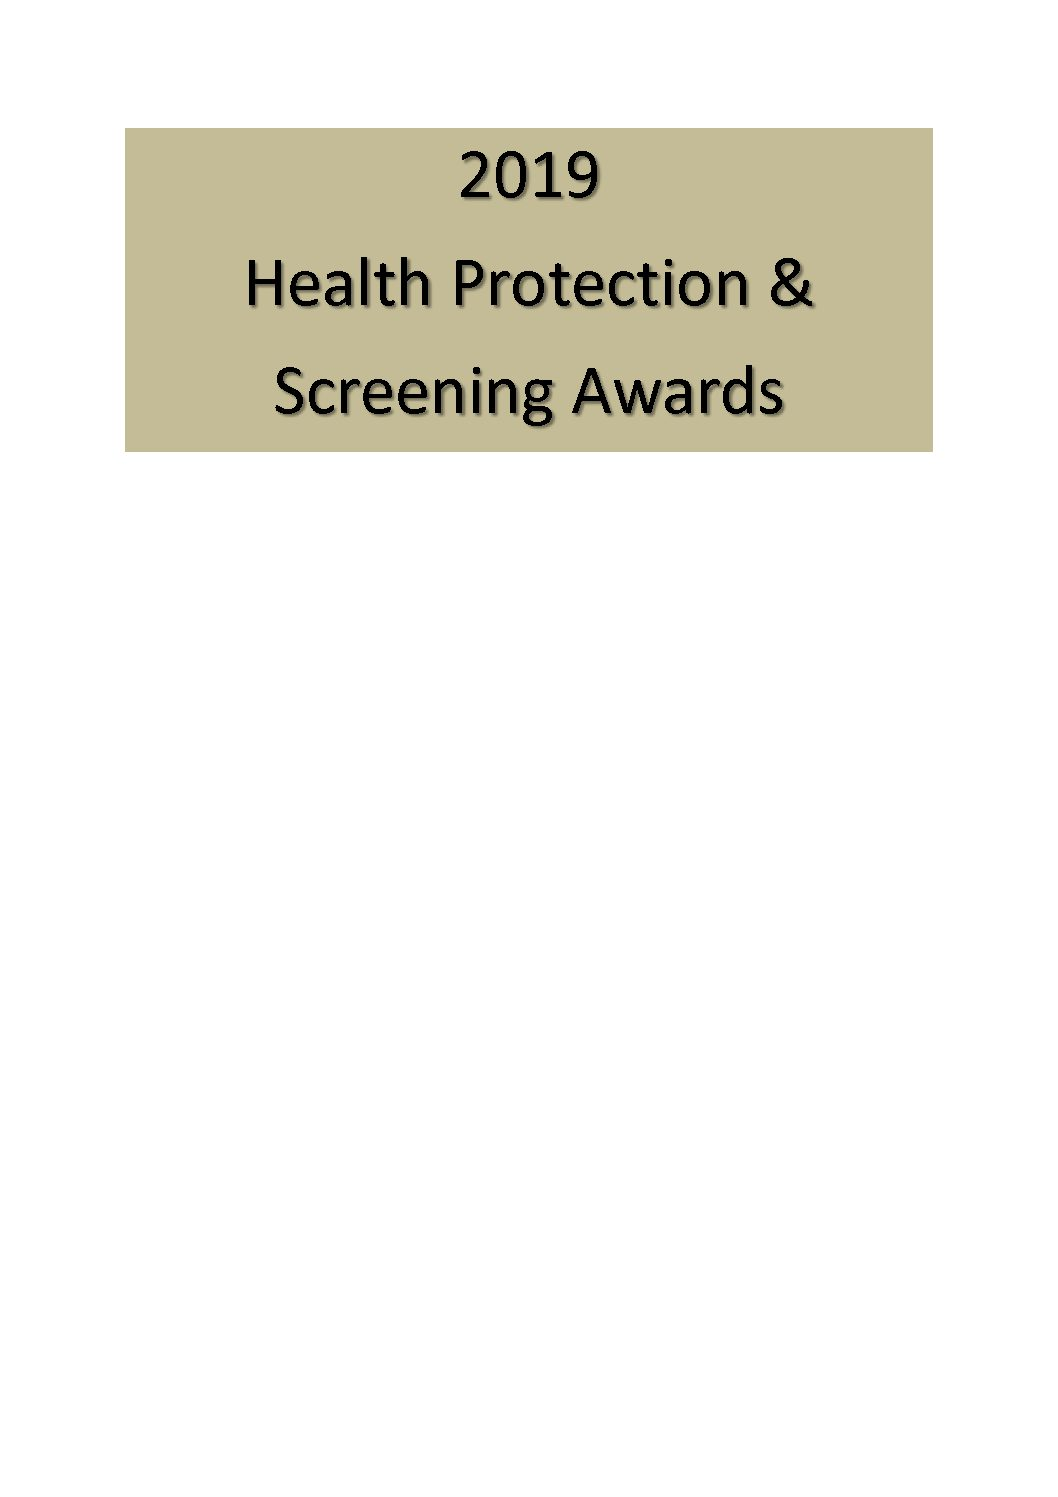 Stockport Health Protection & Screening Awards